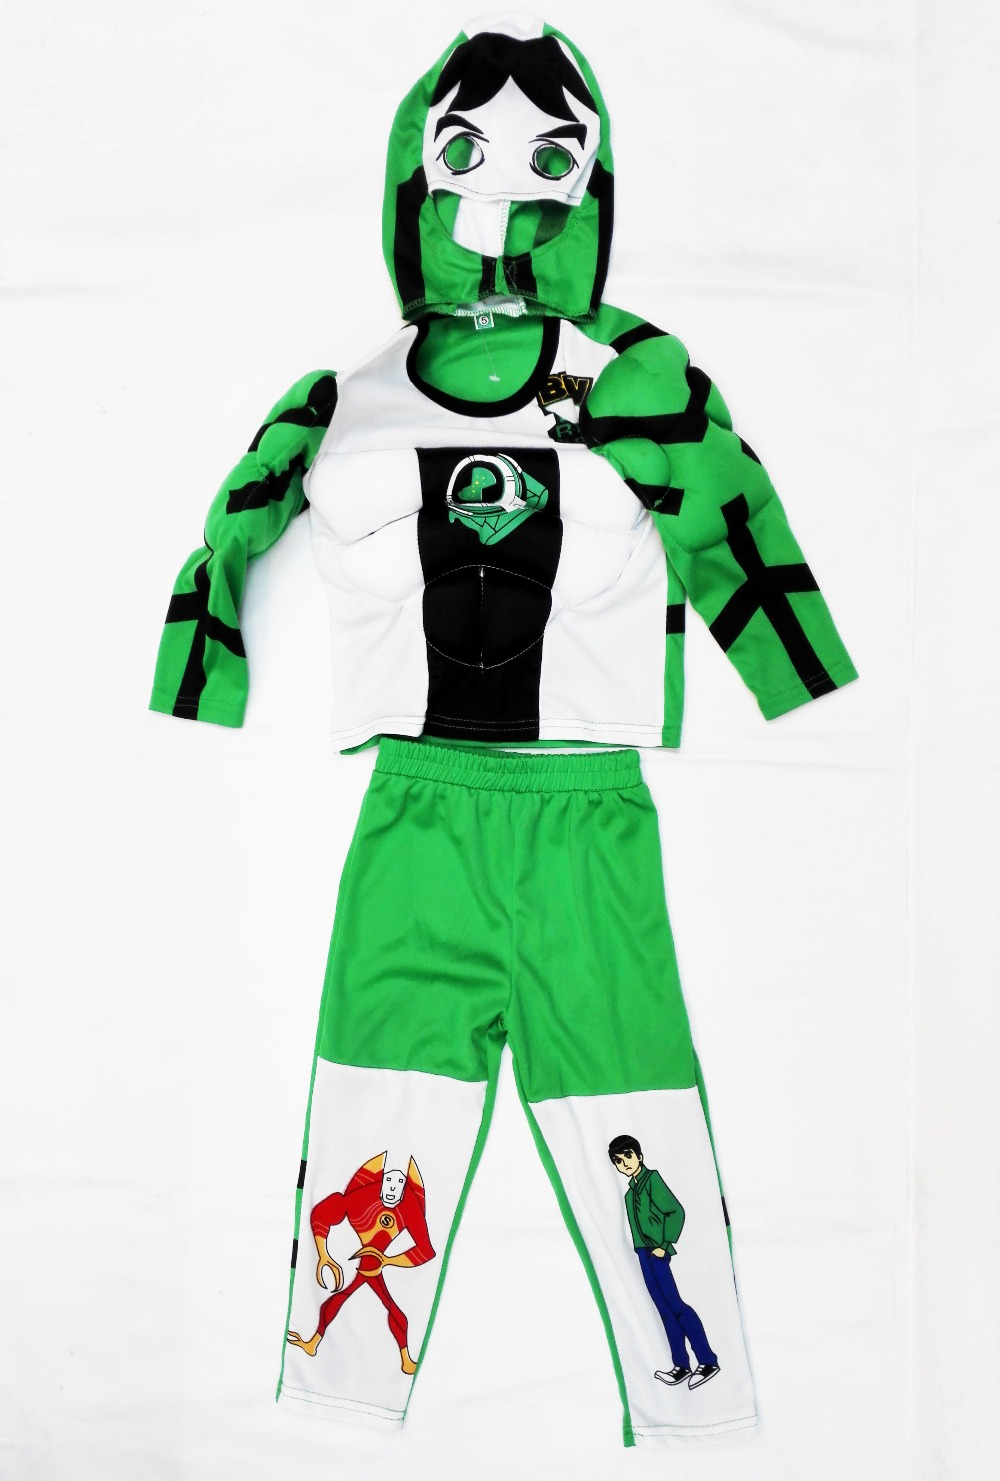 Kid Cosplay Halloween Party Costumes Muscle Ben 10: Race Against Time Clothing,Hallowmas Boy Muscle Role-playing Clothing